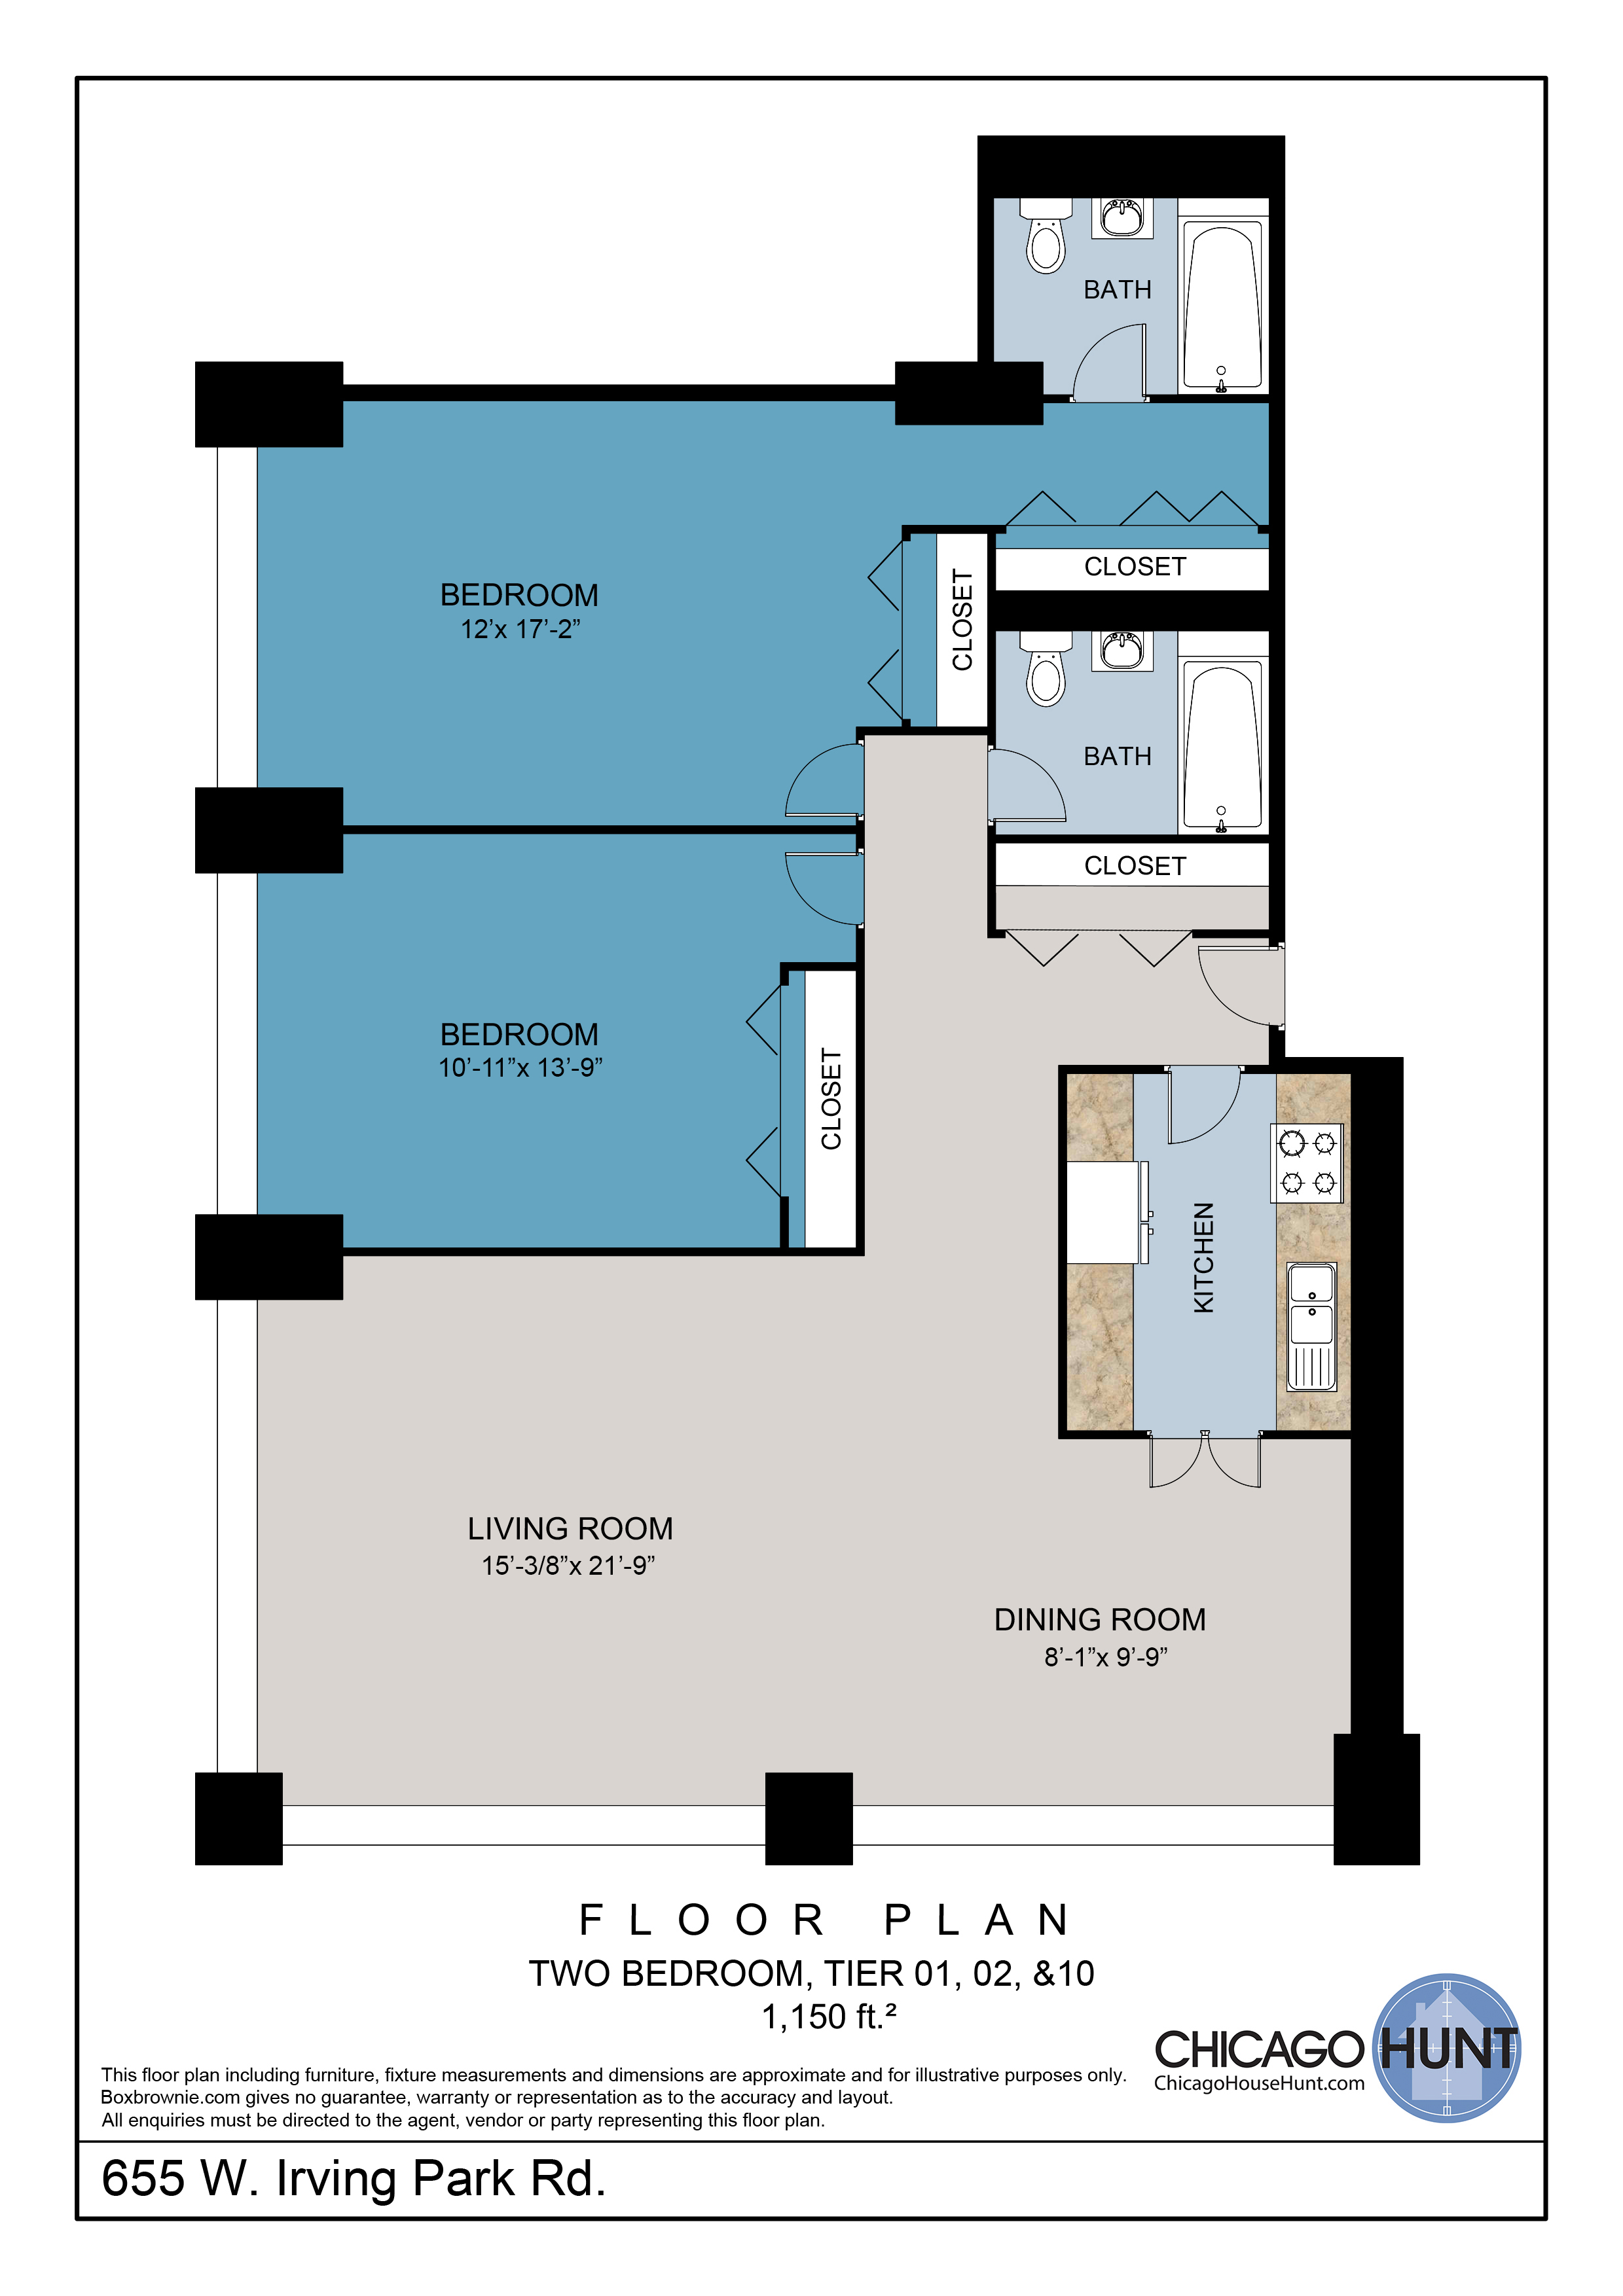 655 Irving Park, Park Place Towere - Floor Plan - Tier 01, 02, & 10